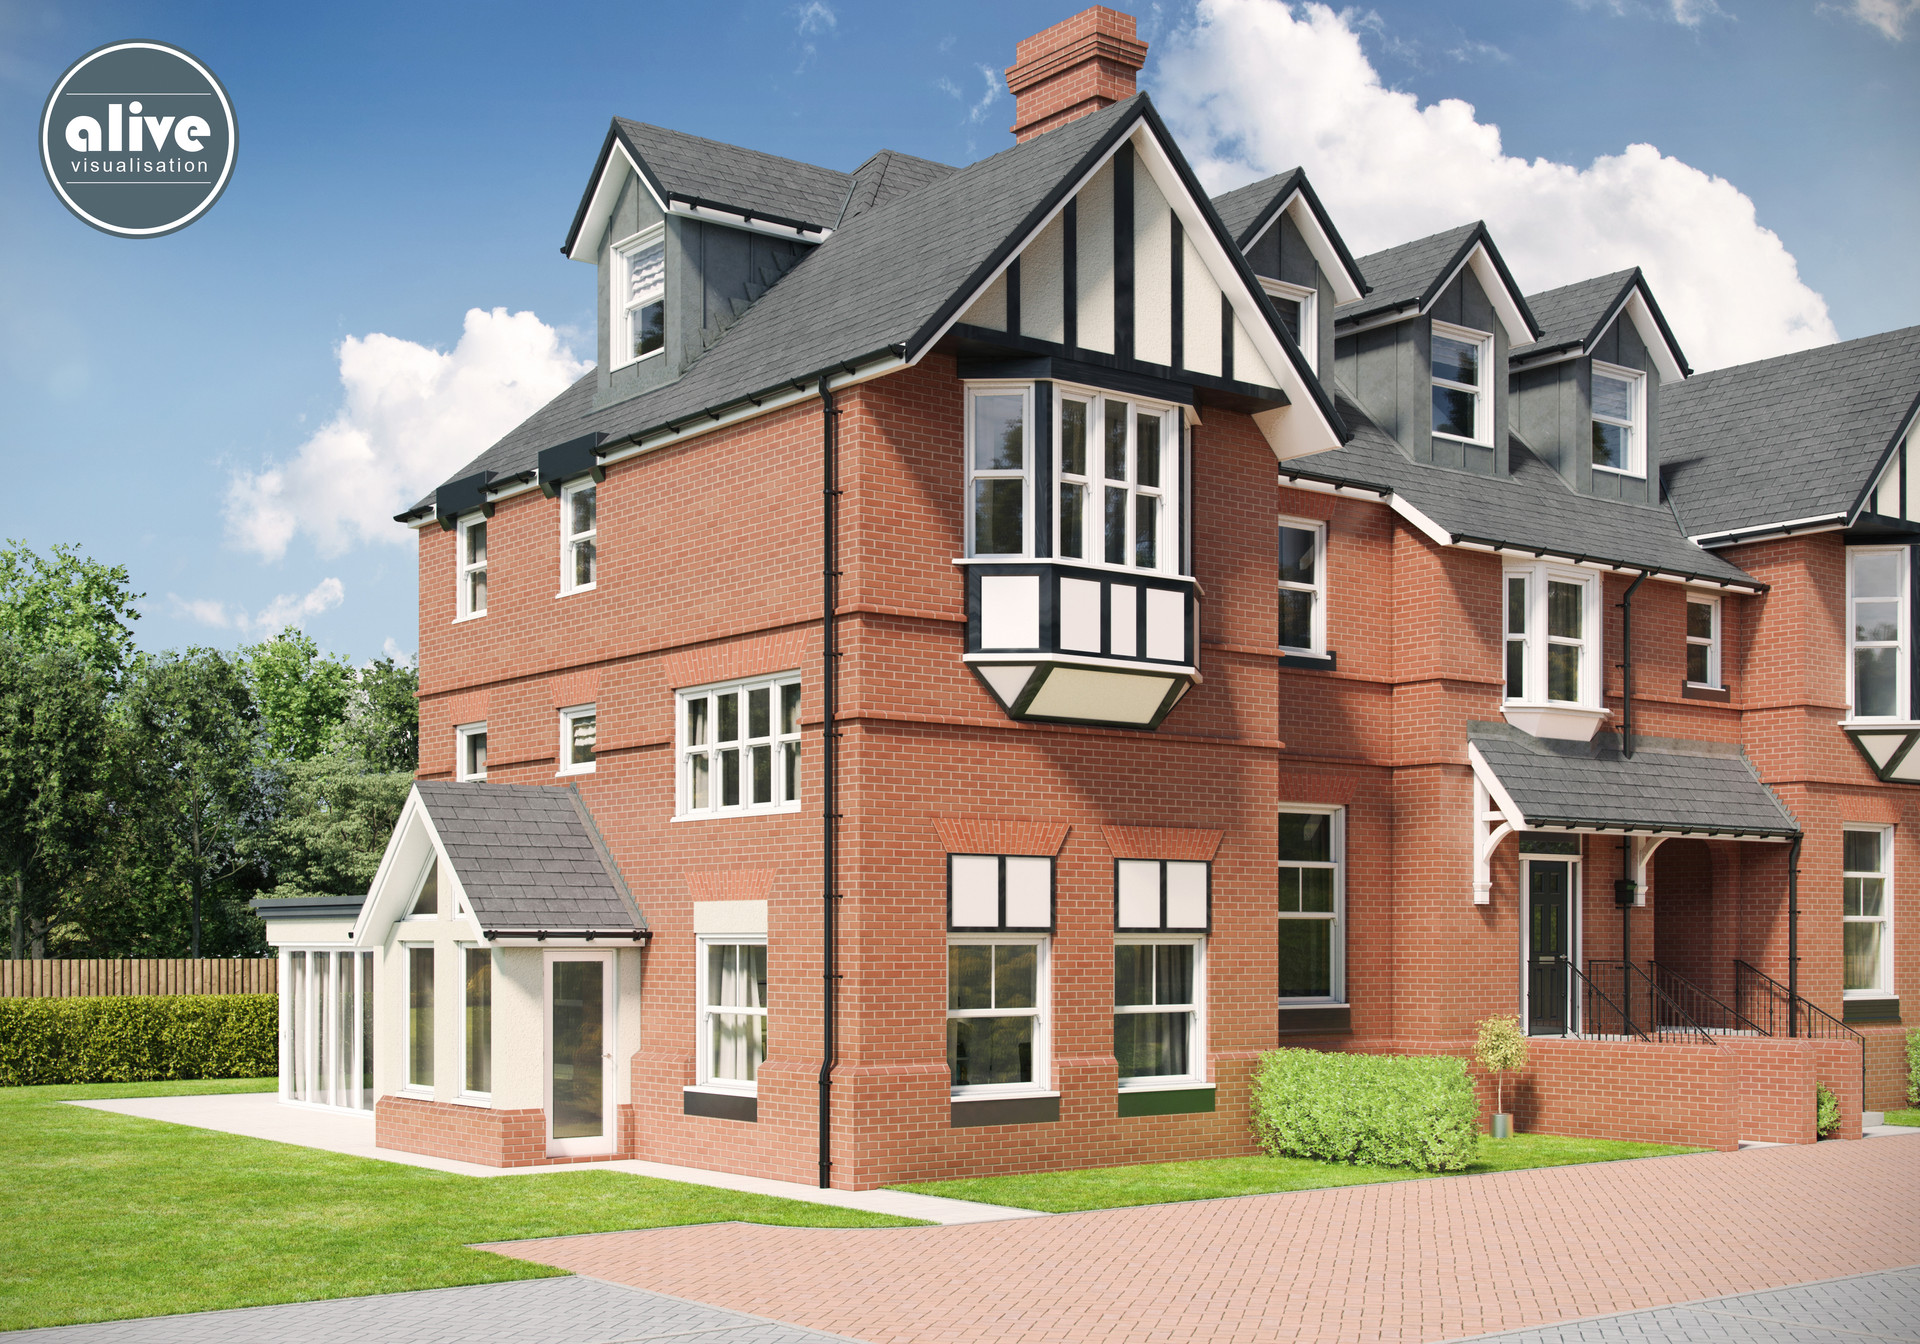 Property Sales House CGI